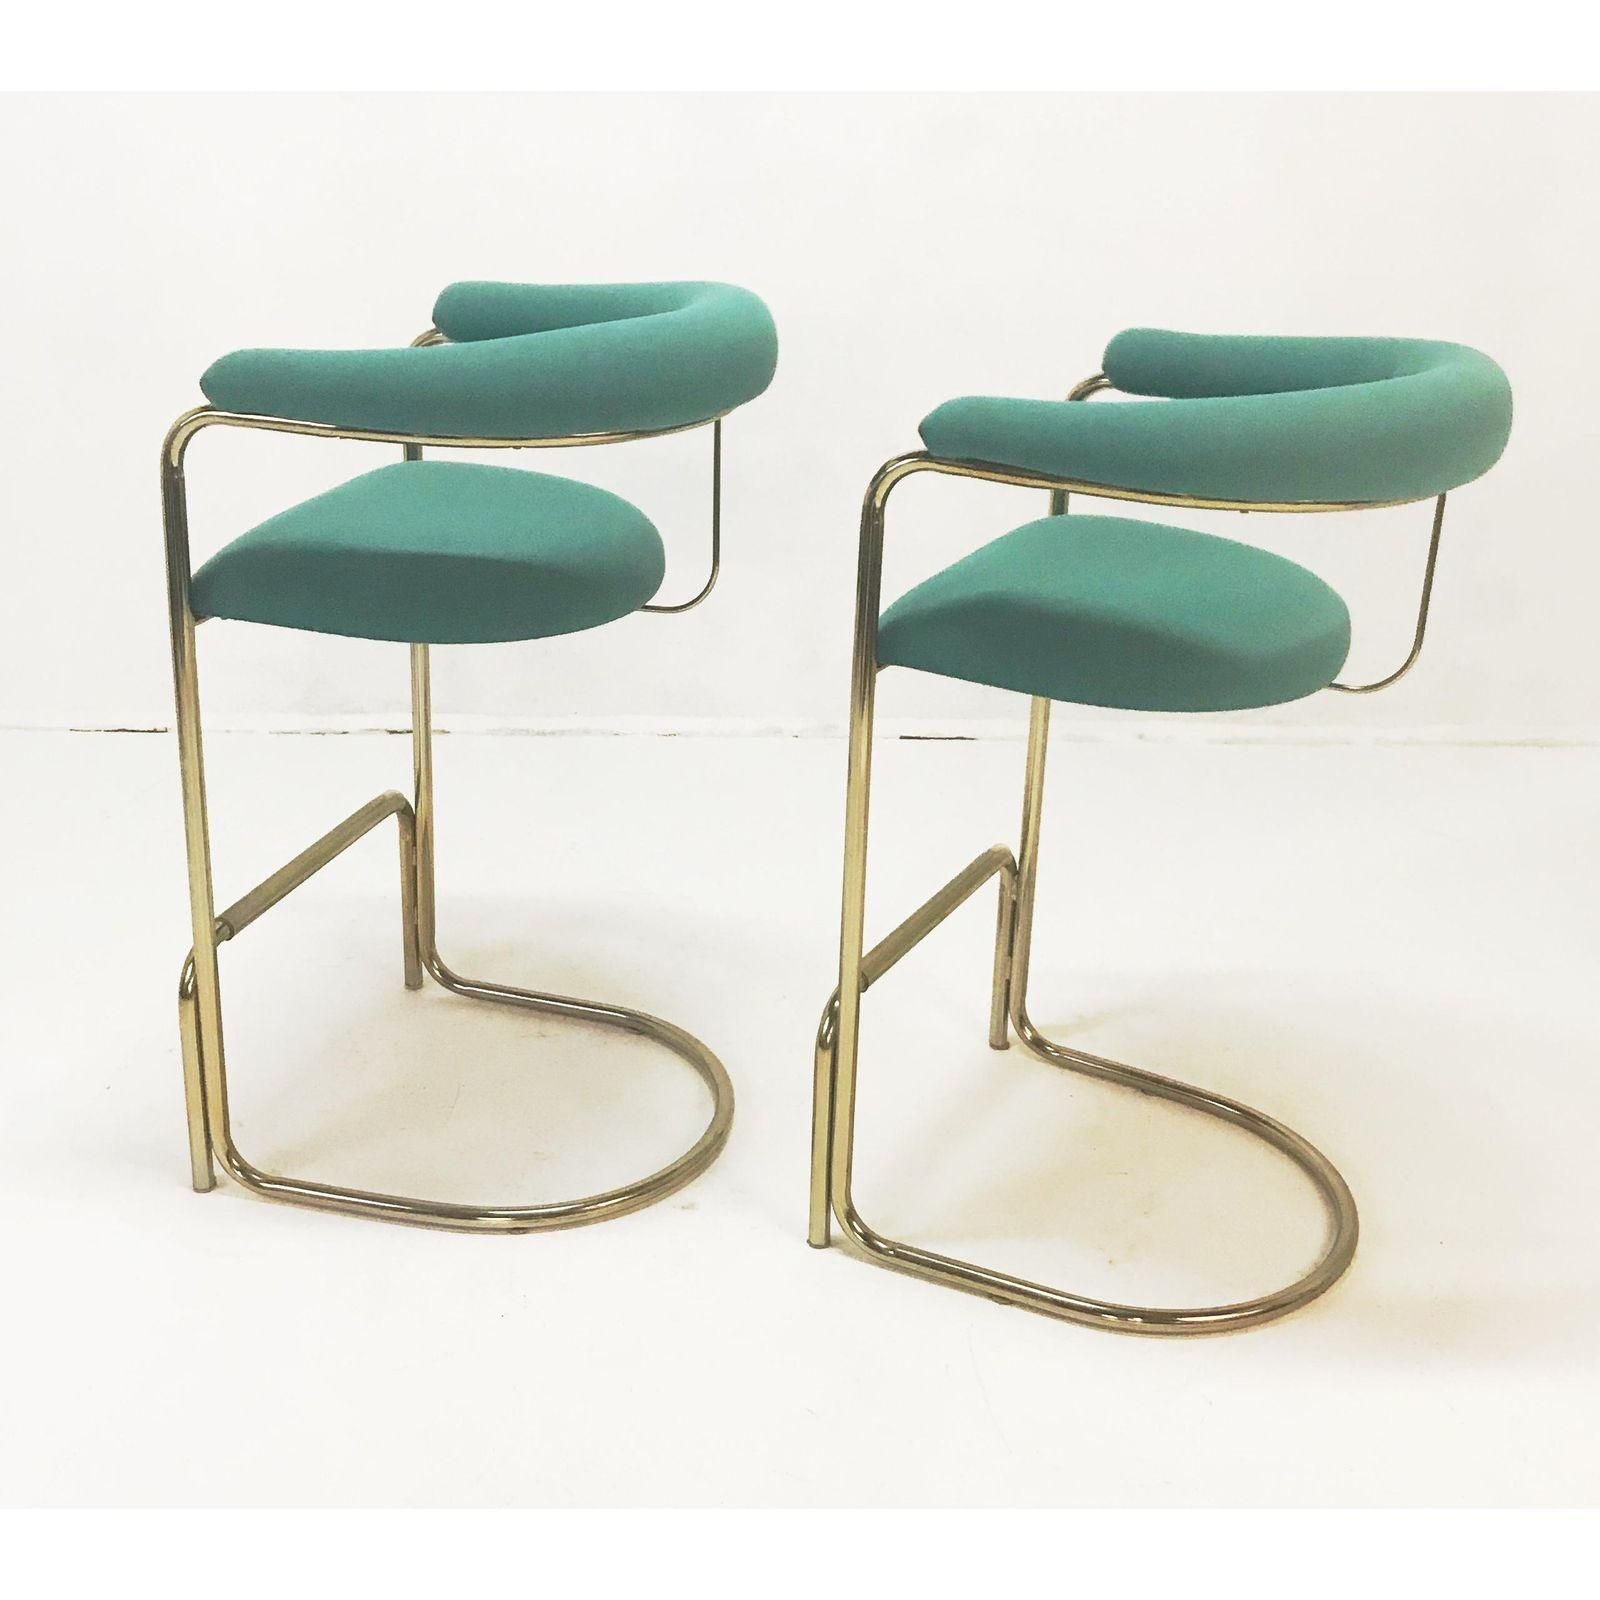 Awesome Anton Lorenz For Thonet Brass Cantilever Bar Stools A Pair Pdpeps Interior Chair Design Pdpepsorg